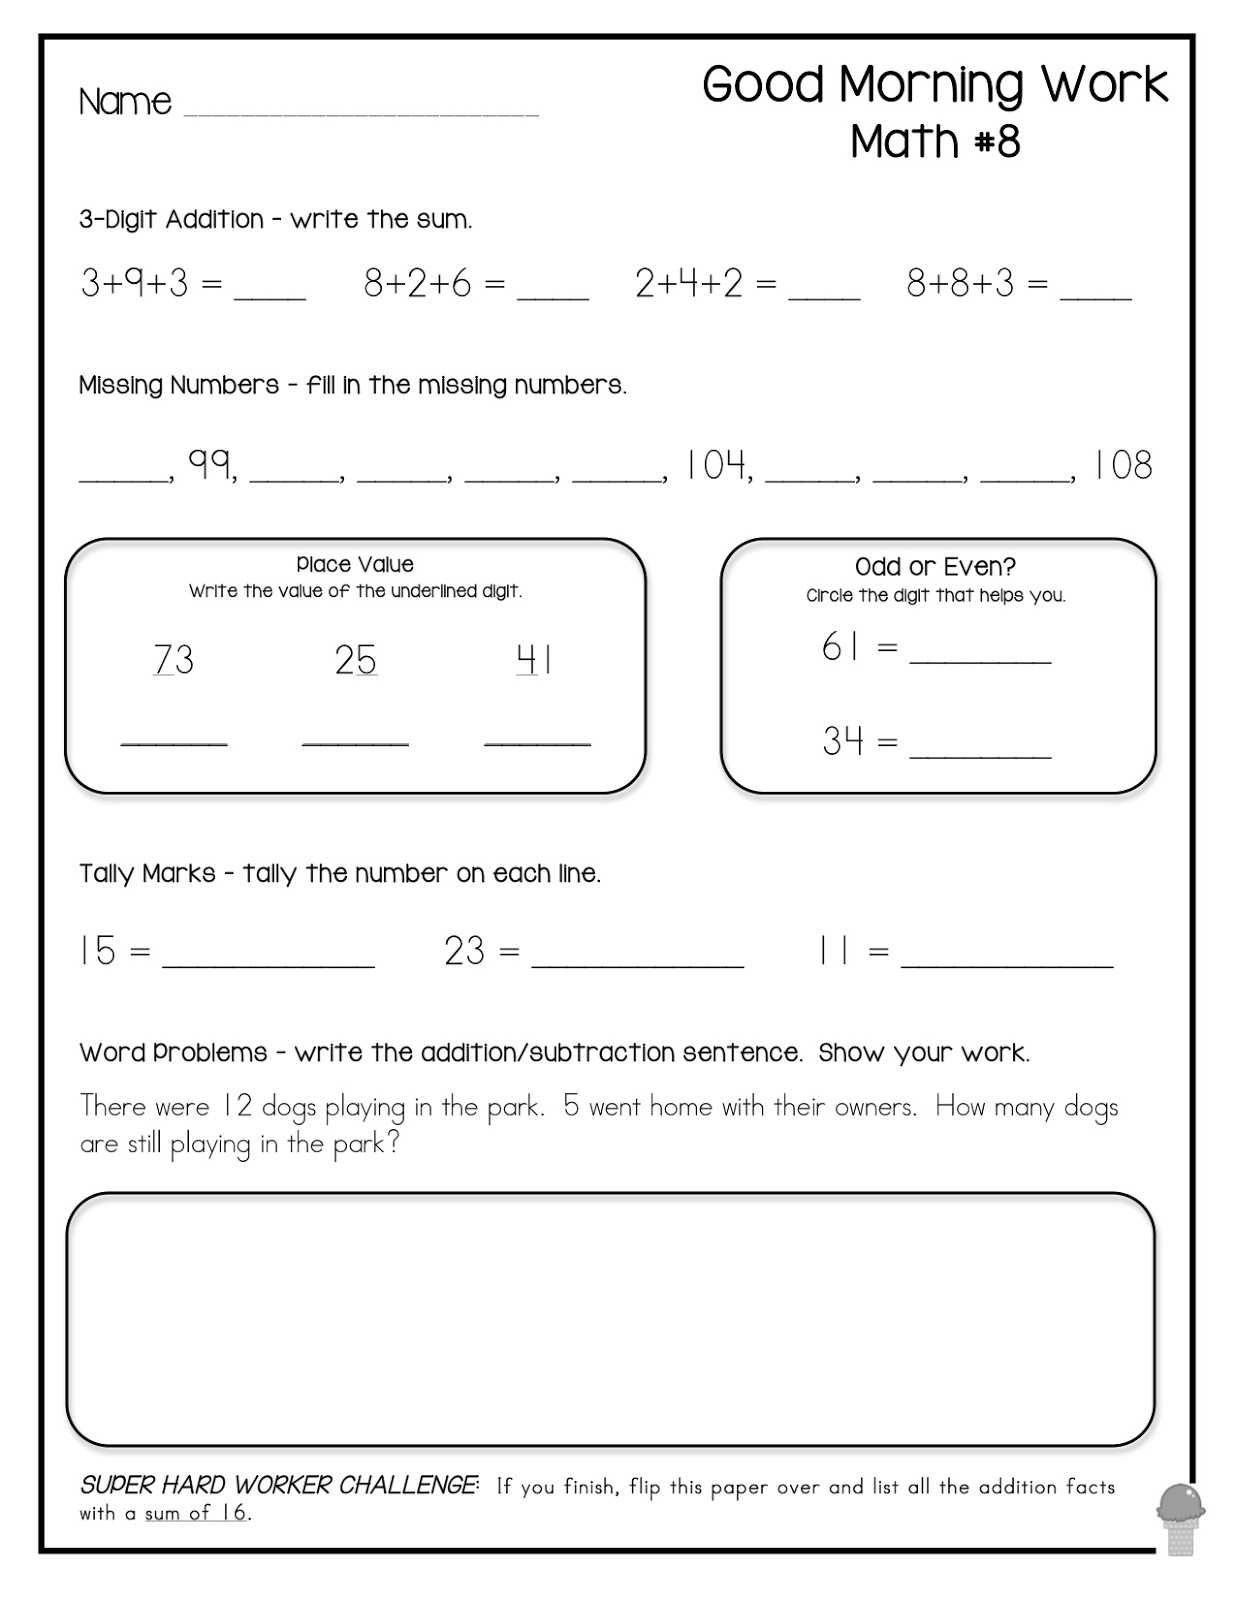 Esl Worksheets for Beginners Adults with Wonderful Printable Brain Teasers 17 for 4th Grade Unusual Free Math